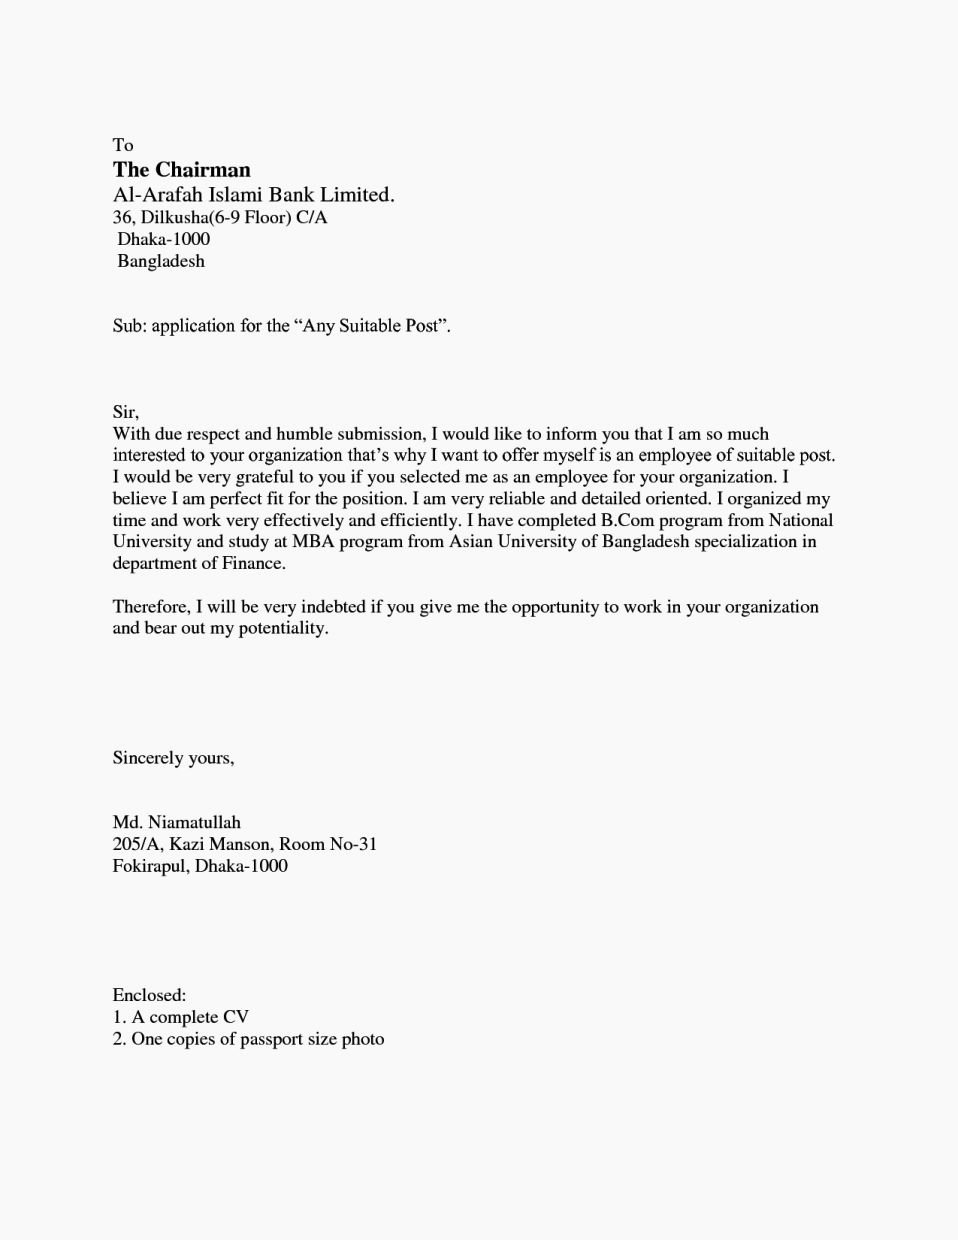 Word Doc Cover Letter Template Unique Cover Letter Word Document Resume Template